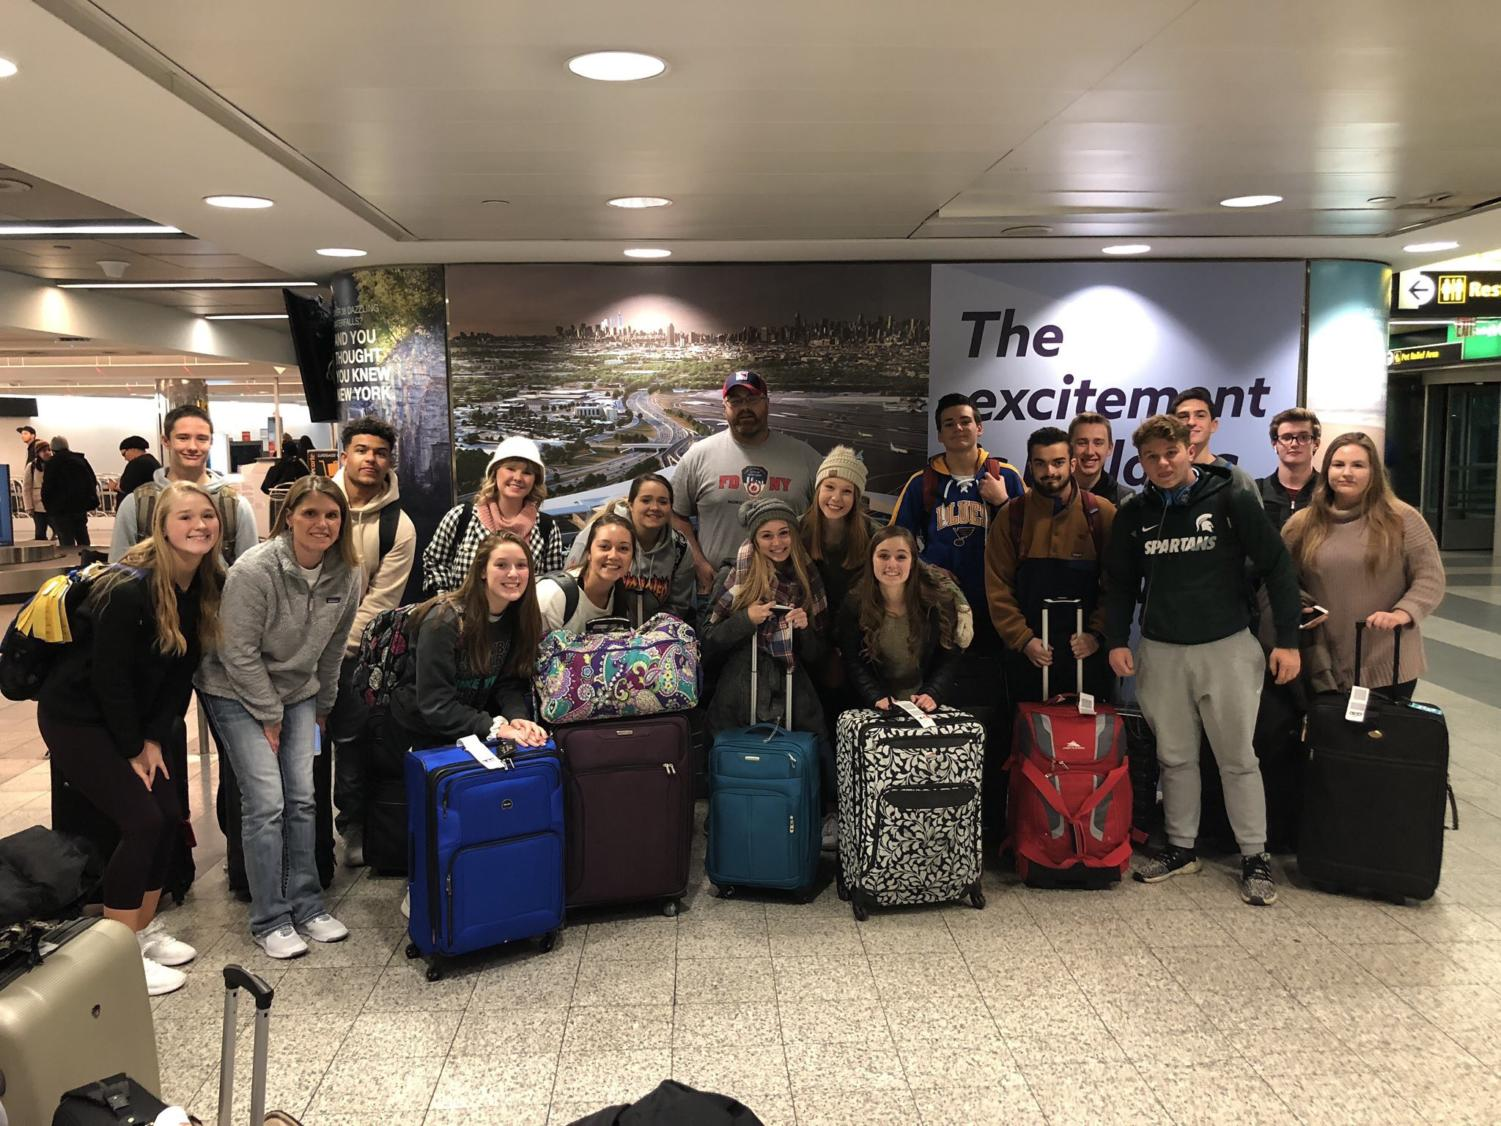 DECA members traveled to New York City in December for four days. The group saw popular attractions like Times Square, NBC Studios and attended the Radio City Christmas Spectacular with the Rockettes.